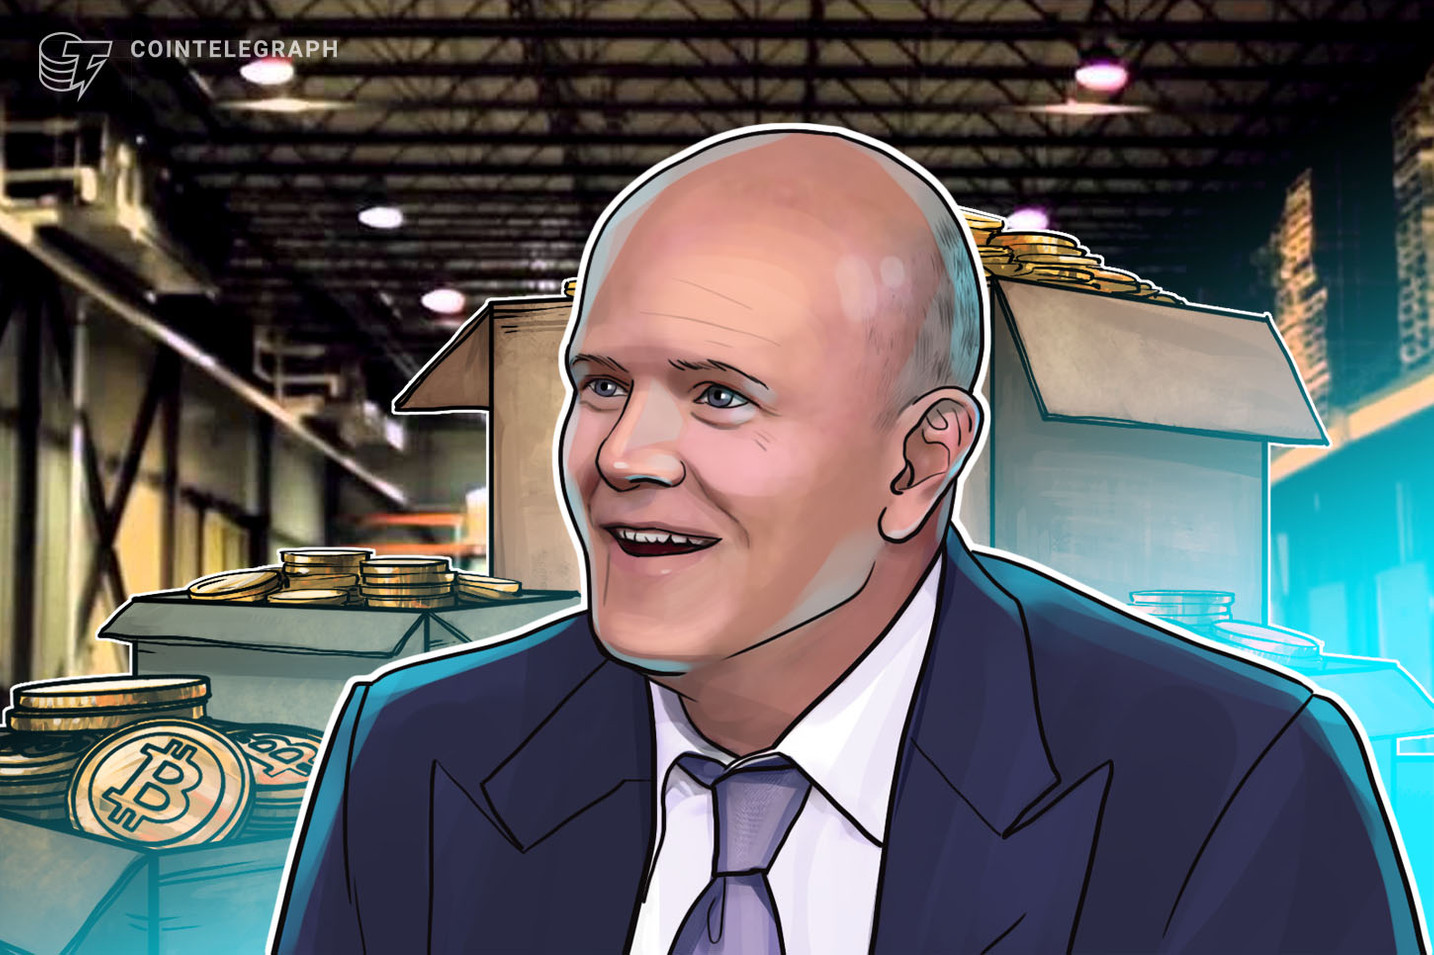 Mike Novogratz has 50% of net worth in crypto, advocates up to 5% for investors